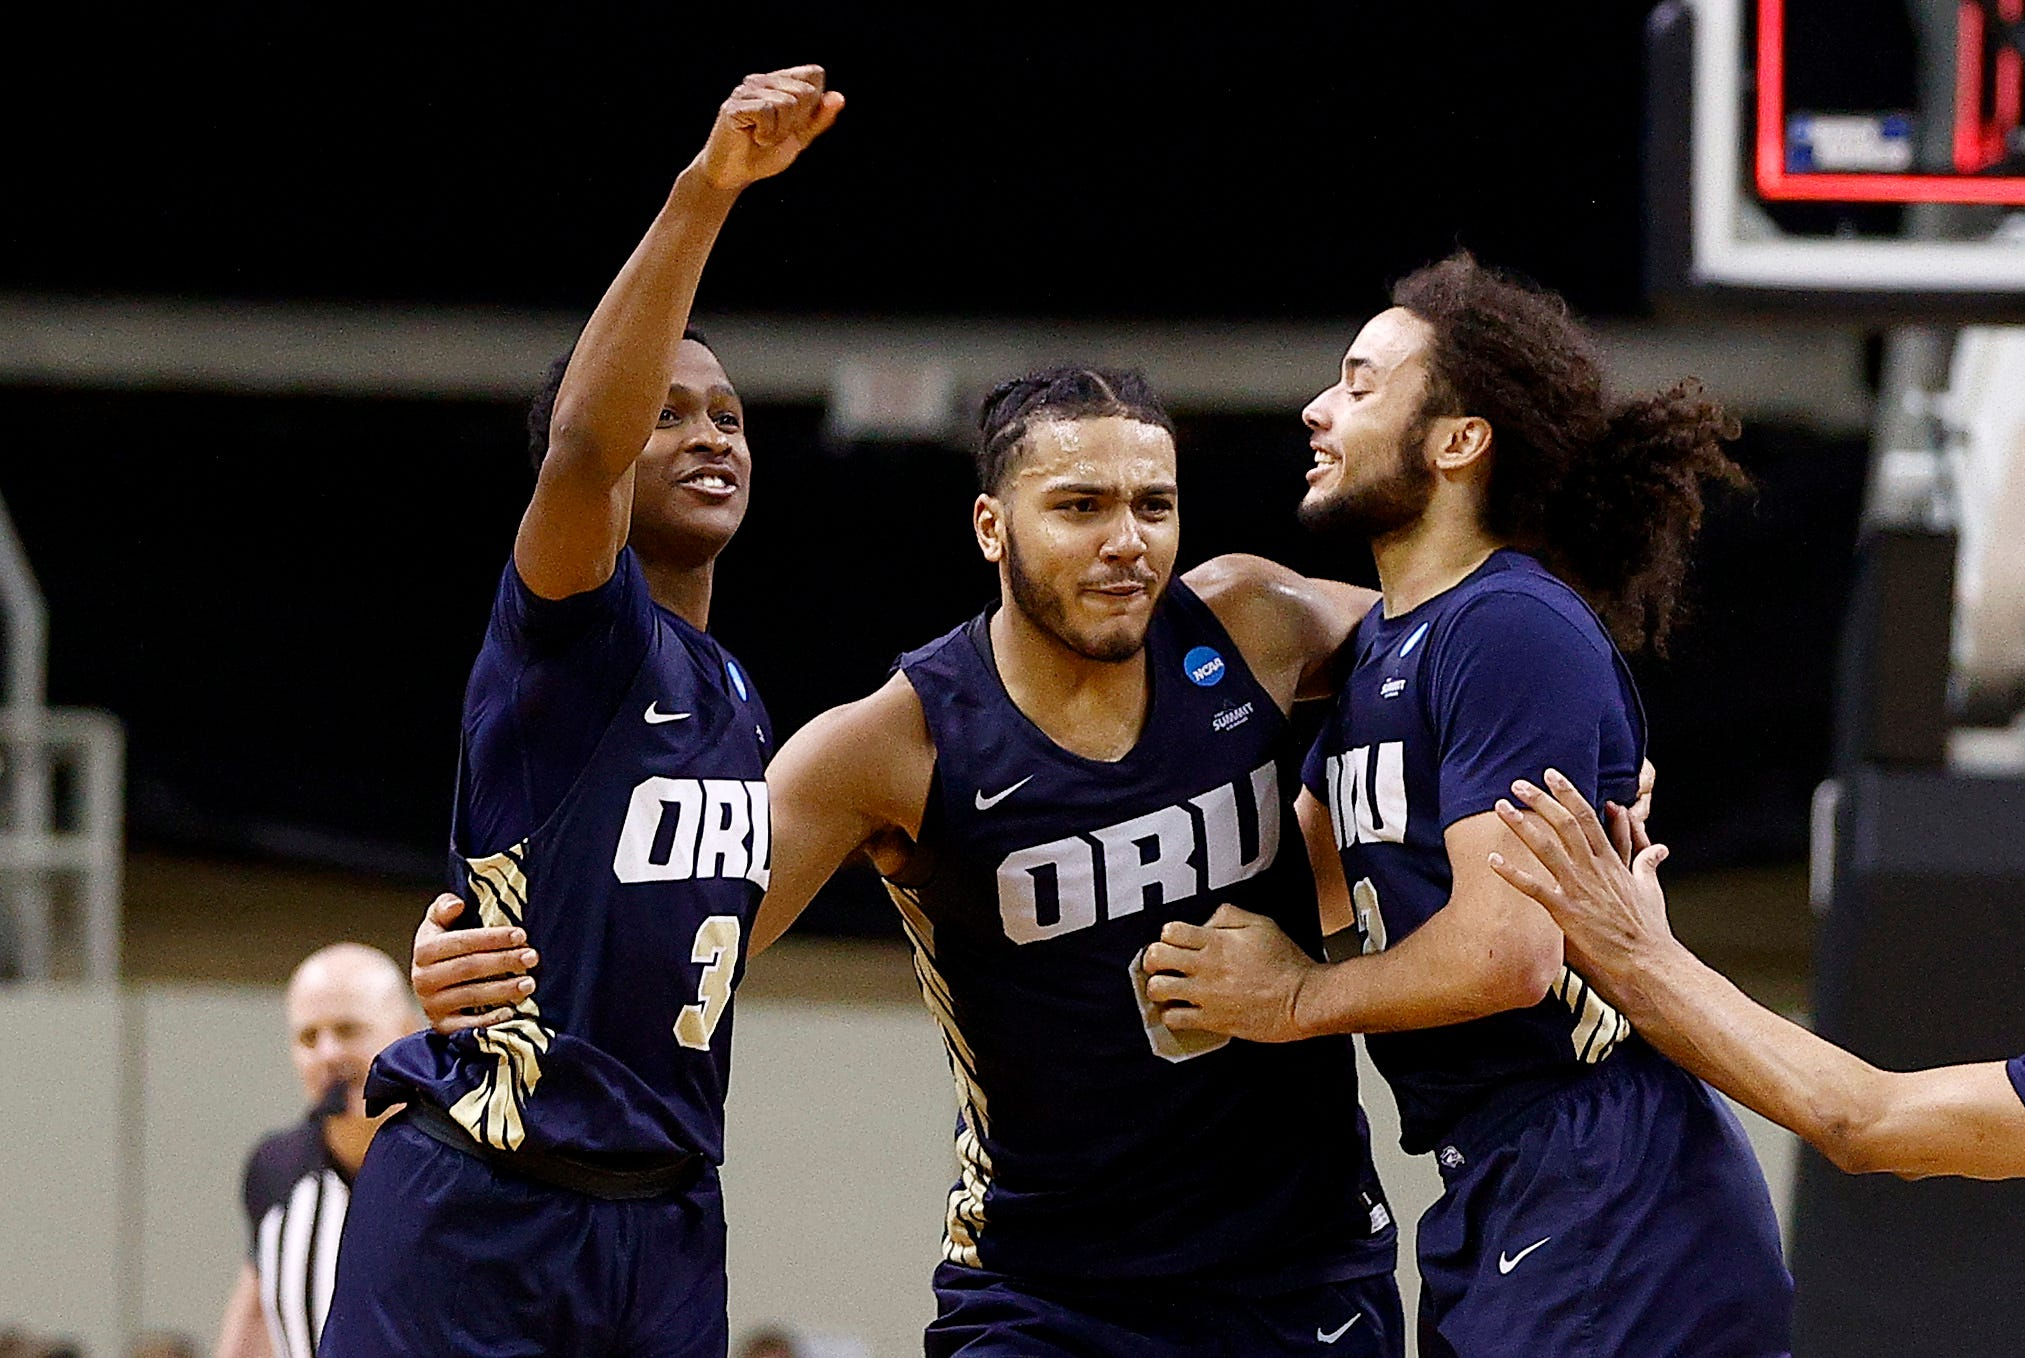 Cinderella run continues! No. 15 seed Oral Roberts upsets Florida to advance to NCAA Tournament s Sweet 16